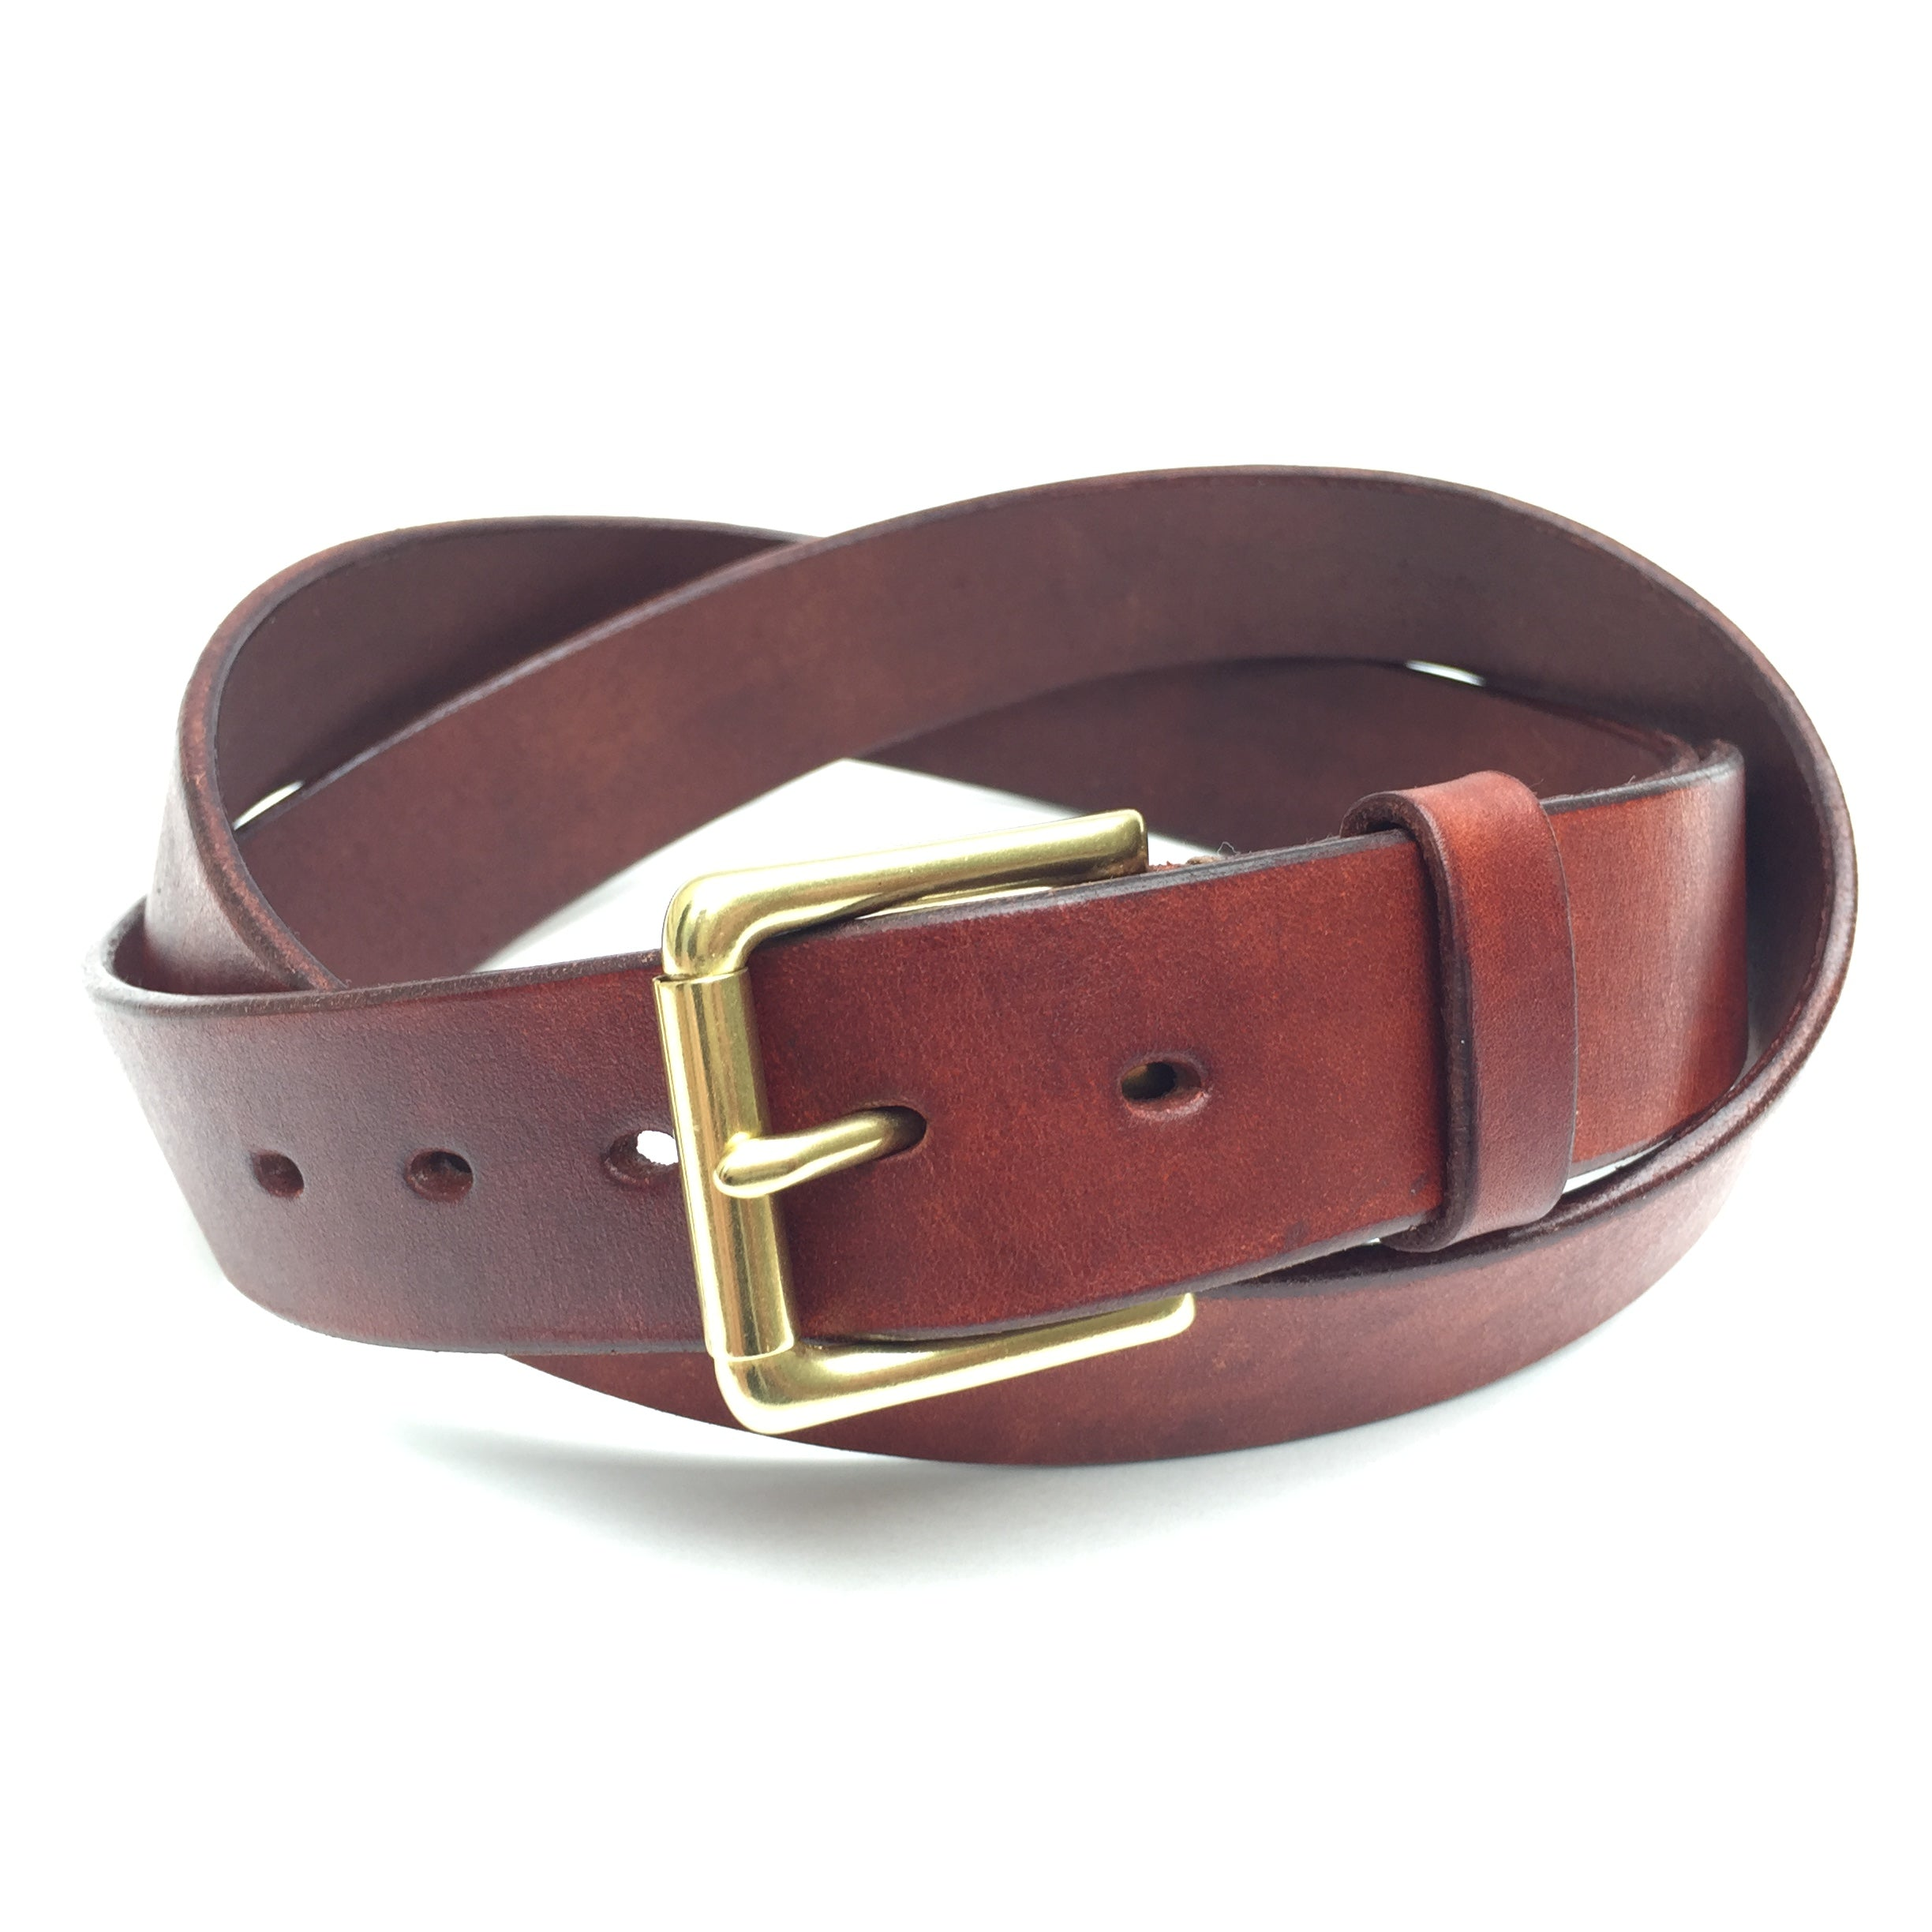 Belt & Band Handmade Vegetable Tanned Leather Chestnut Belt Solid Brass Roller Buckle Custom Size length